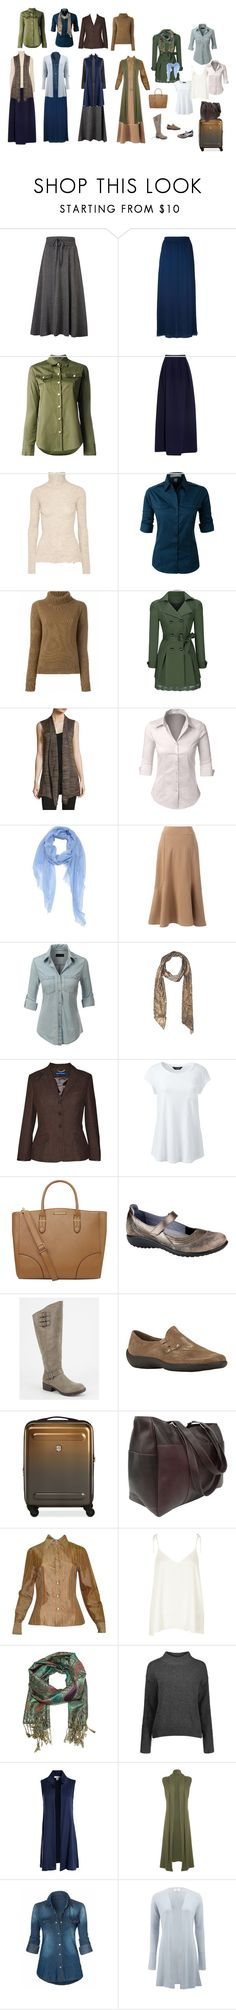 """Capsule wardrobe"" by wd1371 on Polyvore featuring Emporio Armani, Balmain, Delpozo, Acne Studios, LE3NO, Vanessa Bruno, WithChic, Ming Wang, Lands' End and Ralph Lauren Blue Label"